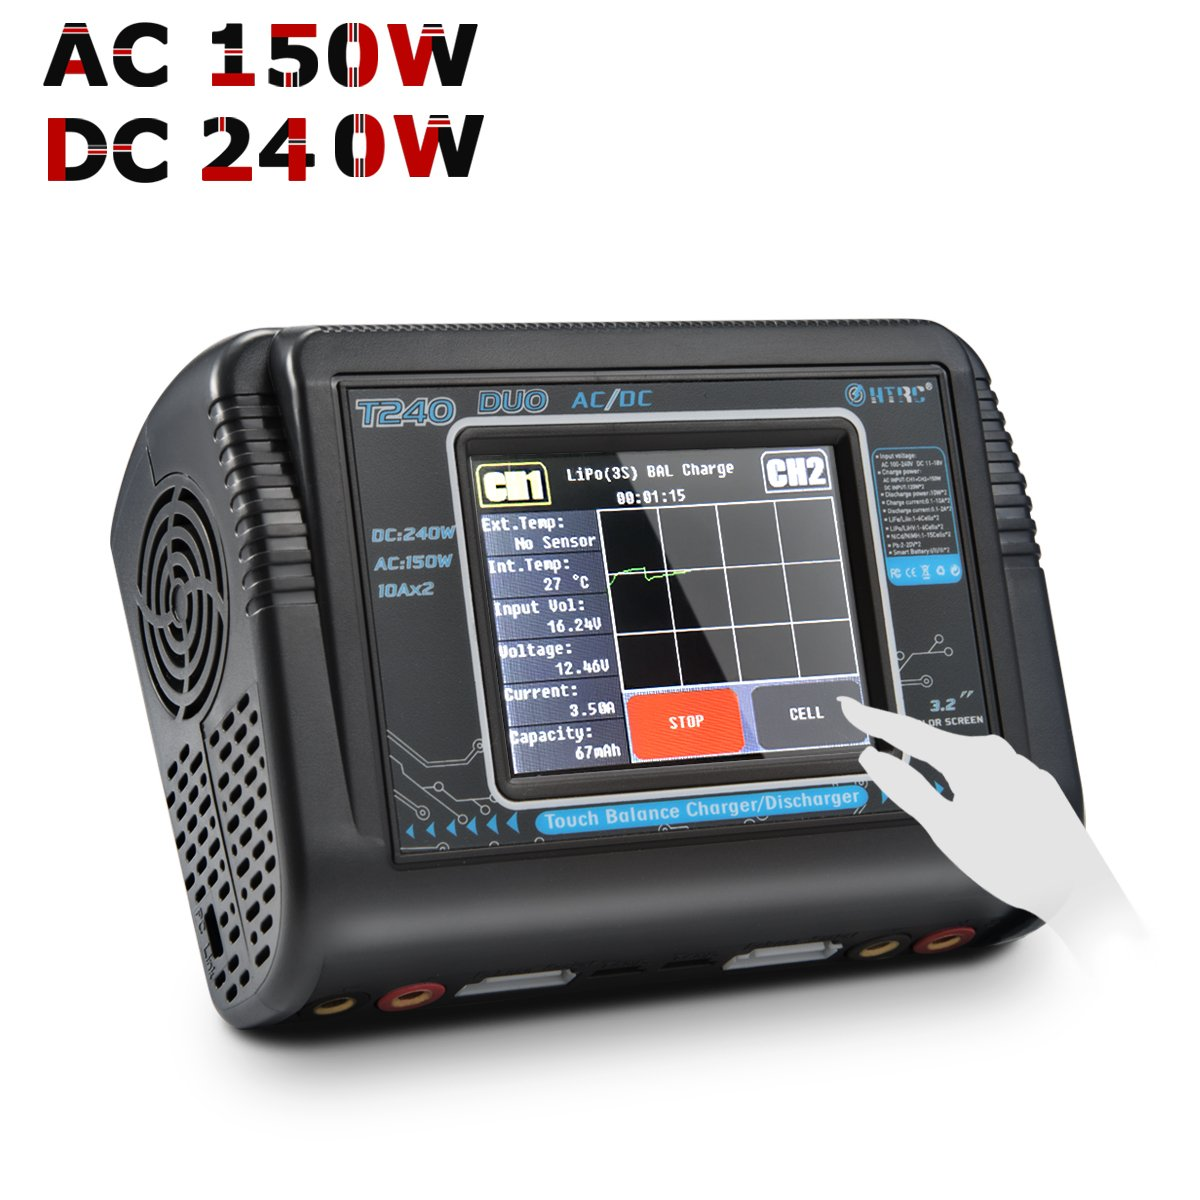 Ahorre hasta un 70% de descuento. HTRC HTRC HTRC T240 Duo RC Balance Charger Discharger for Lilon LiPo Life LiHV NiCd NiMH PB Smart Battery  soporte minorista mayorista